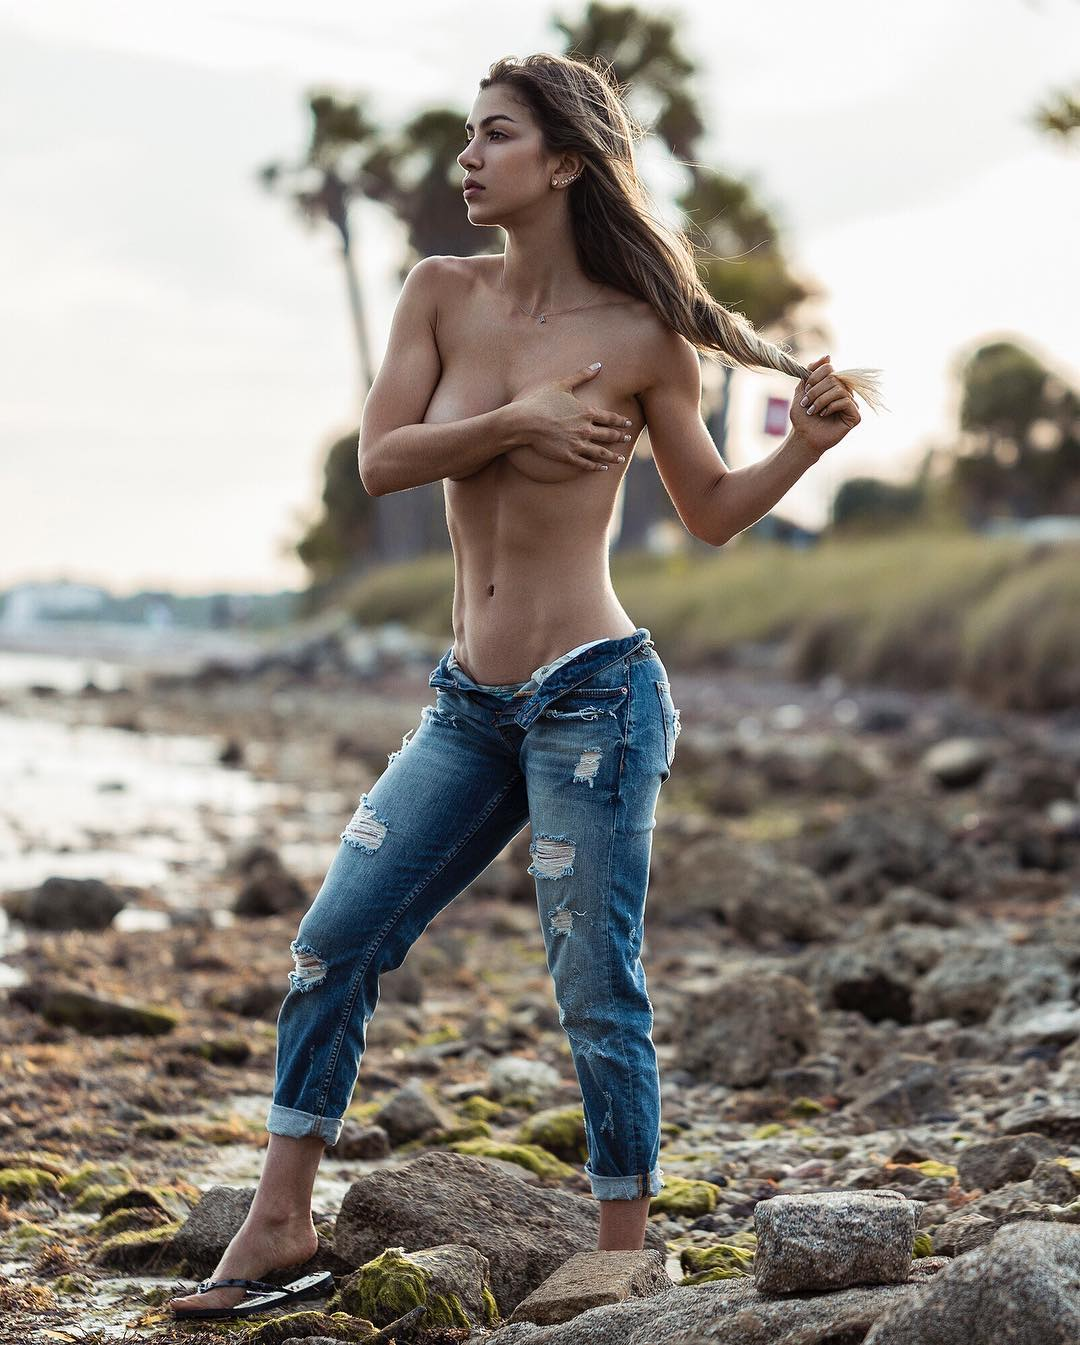 Anllela sagra before and after